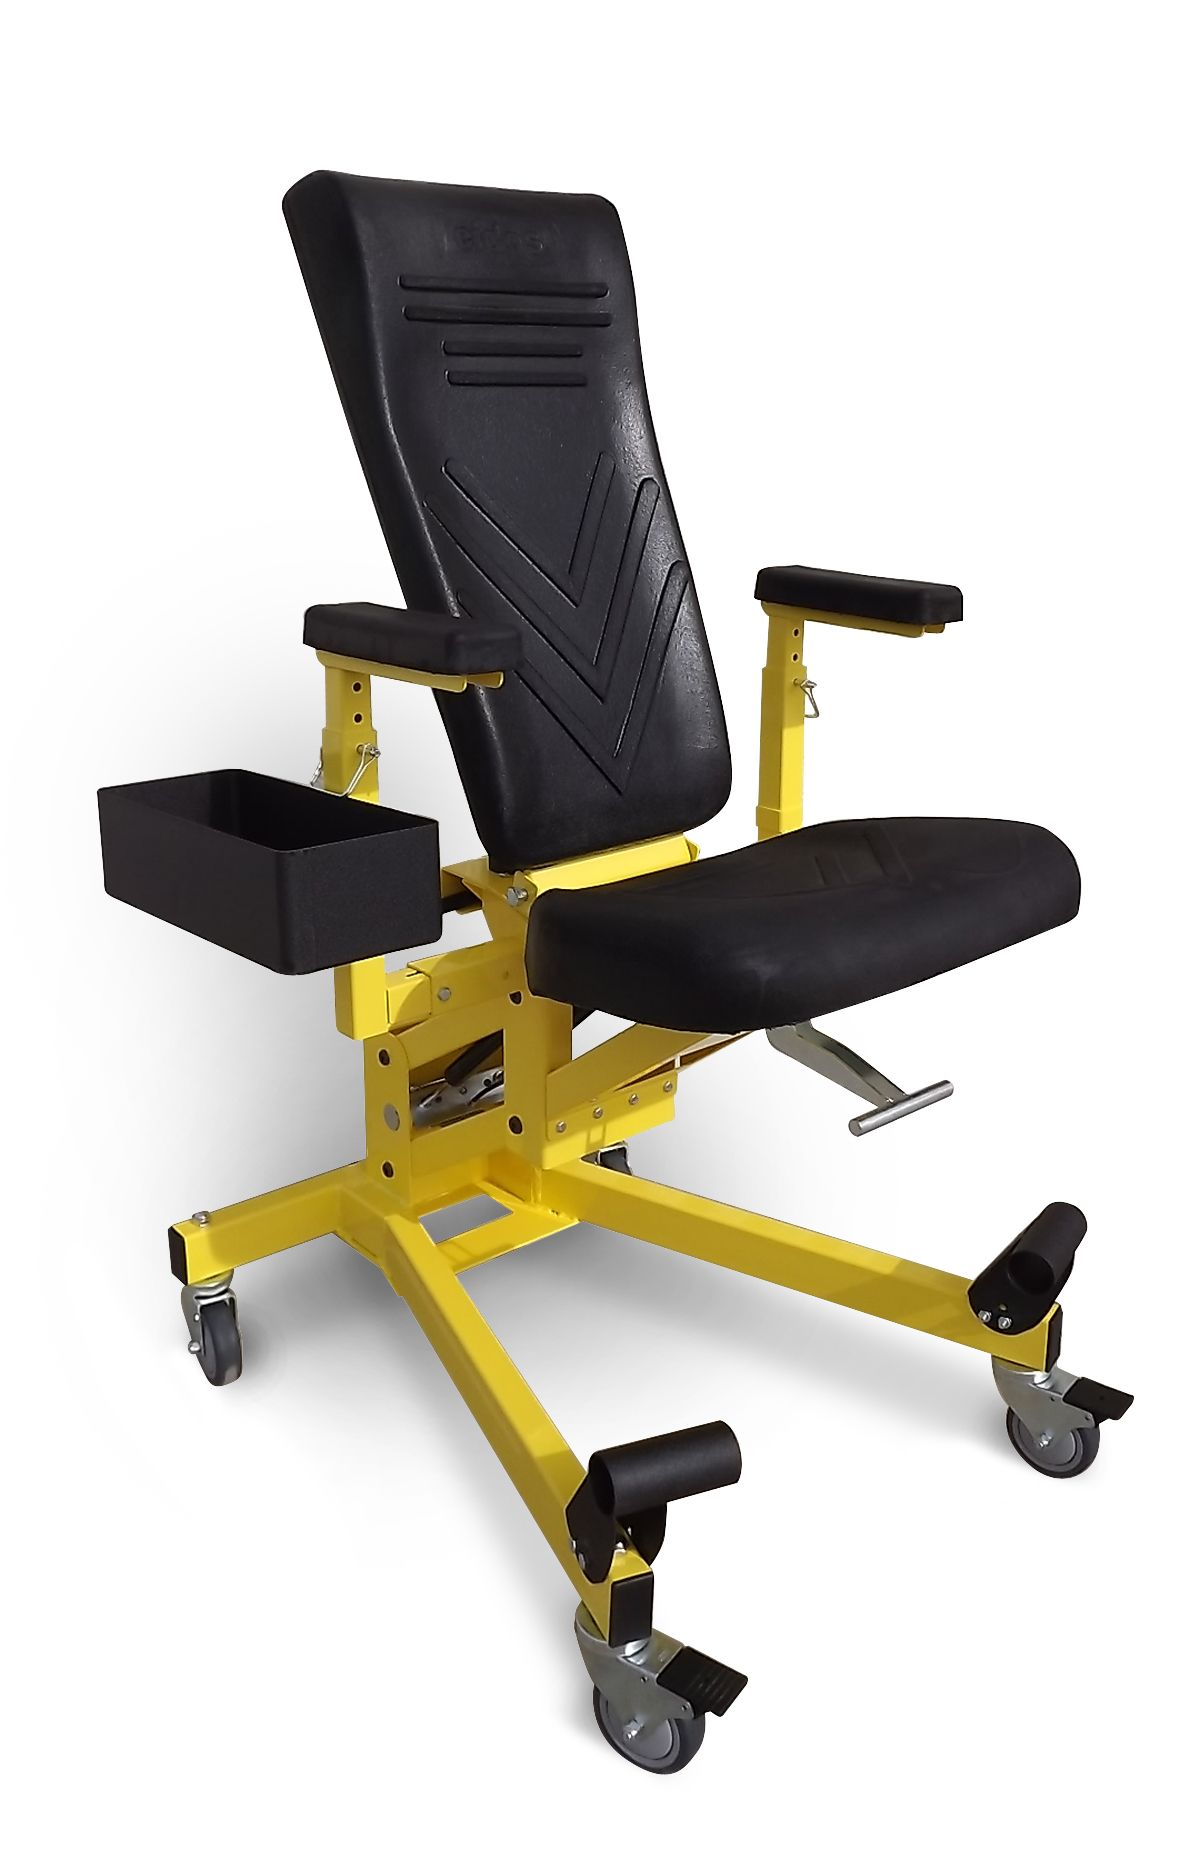 Ergonomic Work Chairs Eidos Model 117 Gsw Is An Fully Adjustable Work Positioner